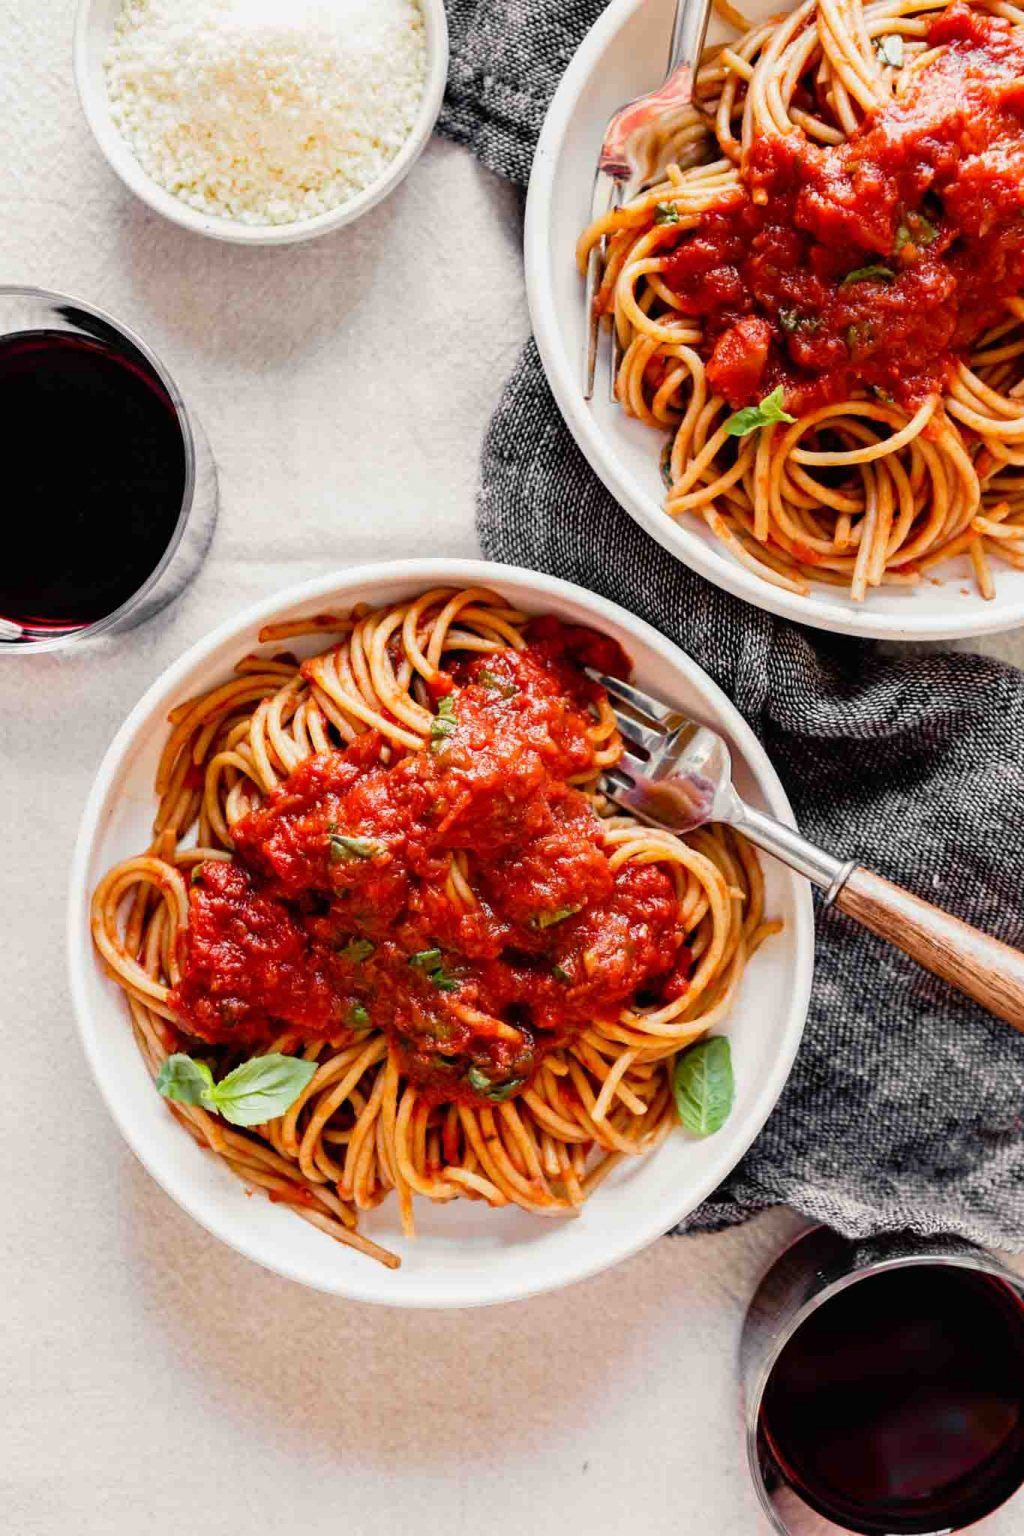 Red Wine Pasta Sauce Recipe In 2020 Red Wine Pasta Sauce Wine Pasta Sauce Pasta Sauce